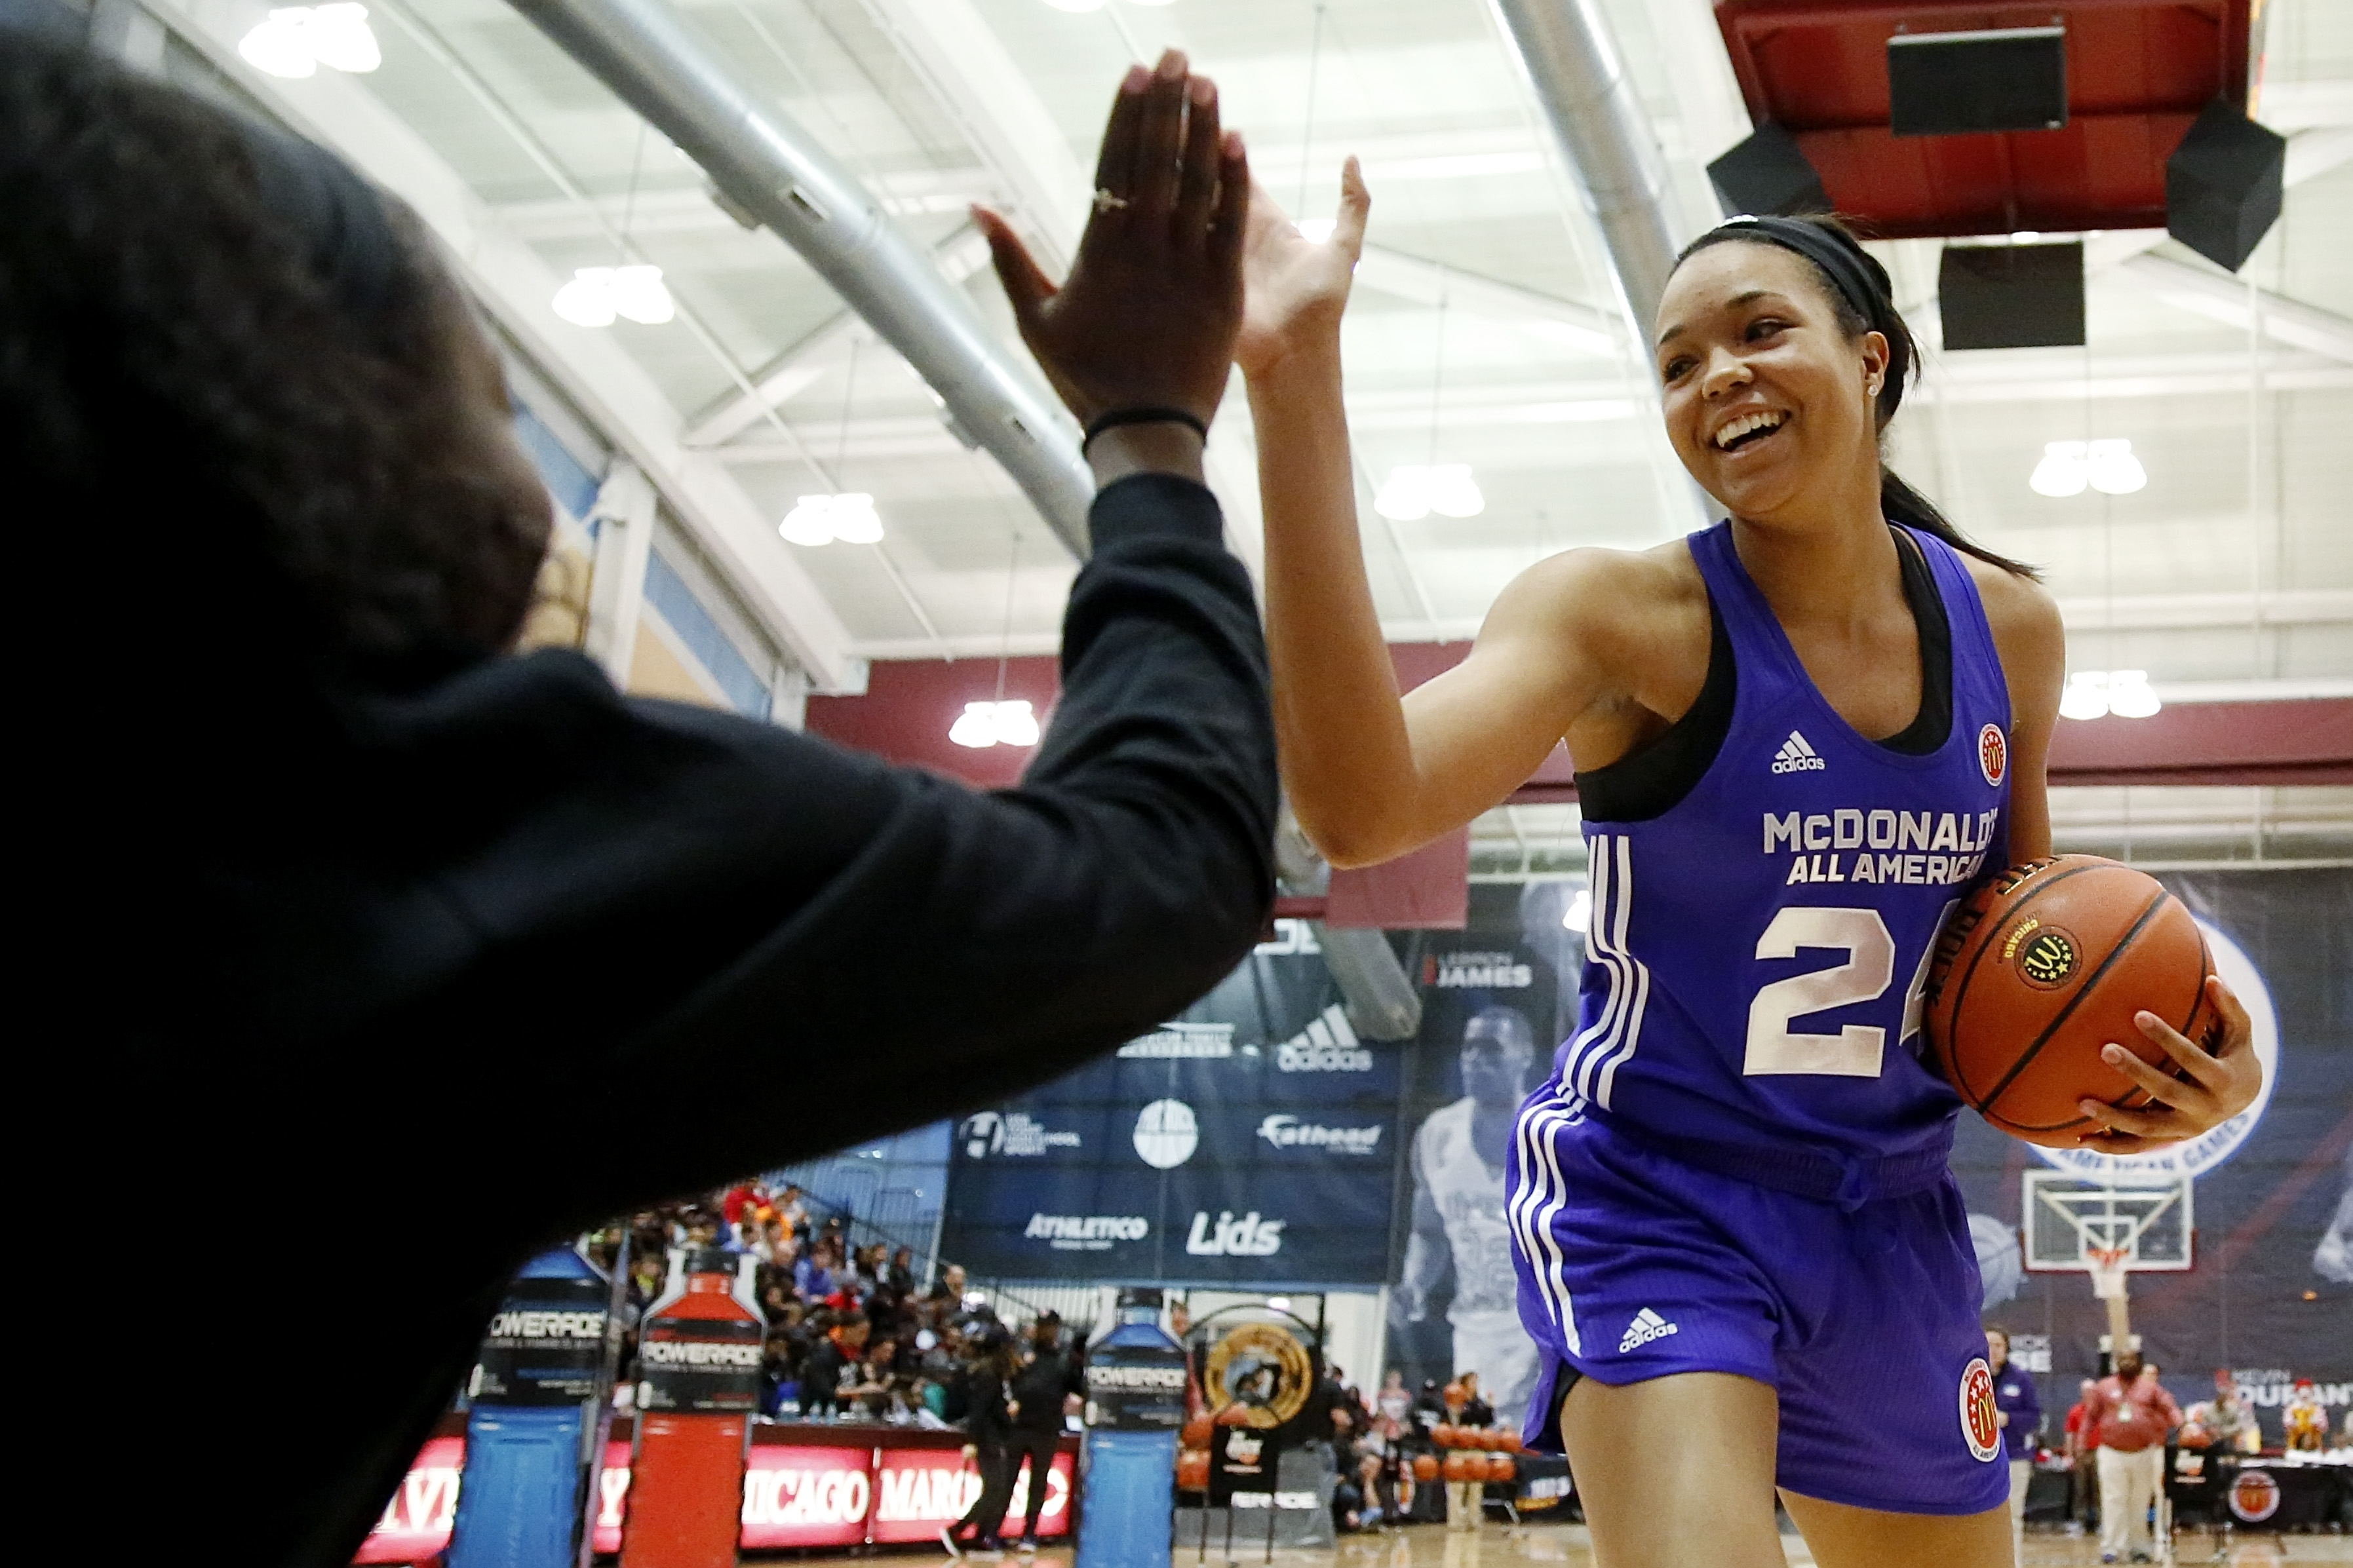 Napheesa Collier from Incarnate Word in St. Louis won the girls' skills competition at the McDonald's All American Game (Photo: Associated Press)